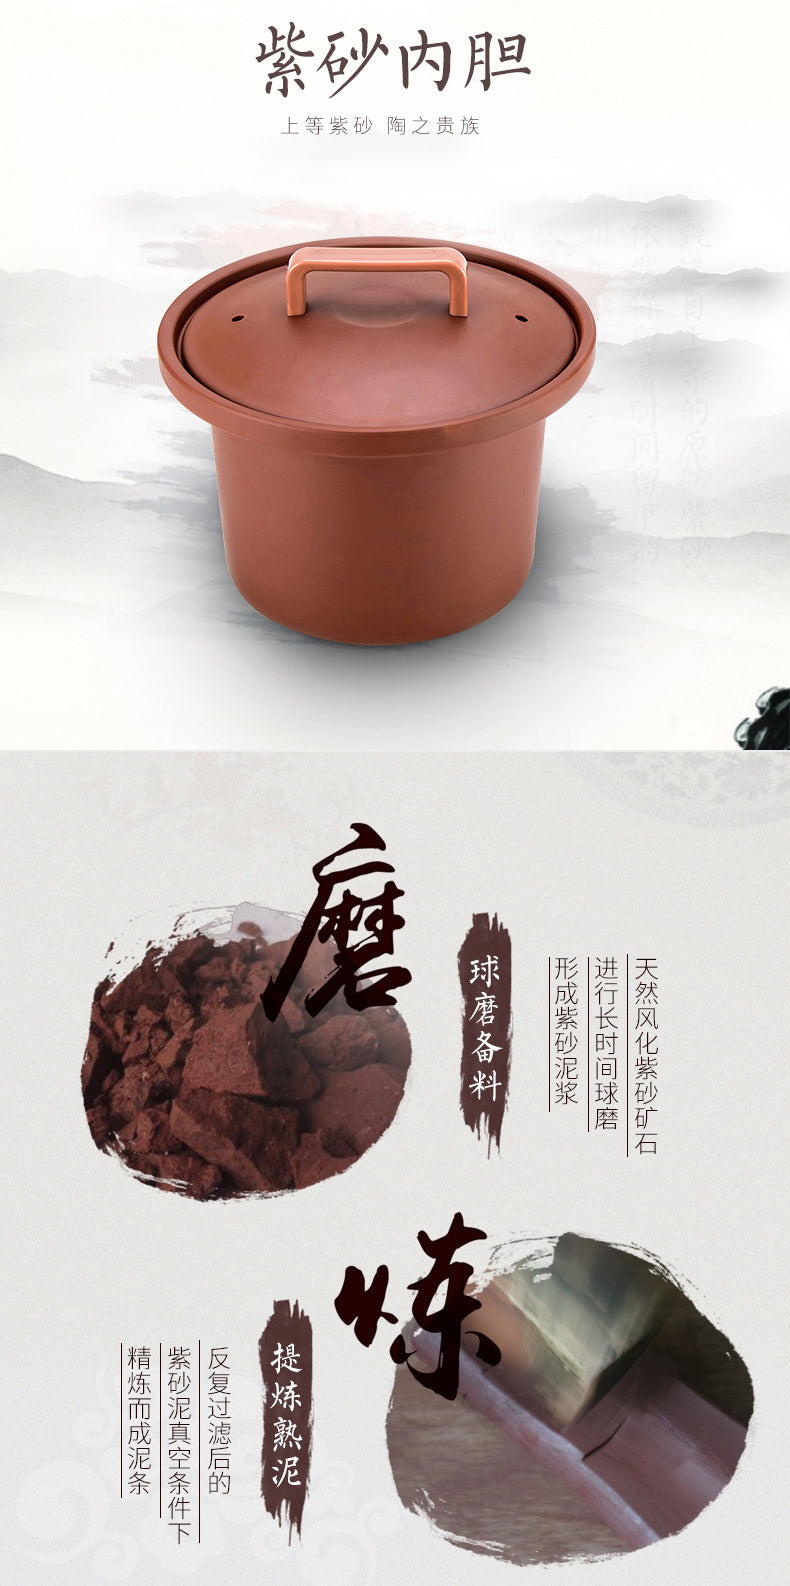 九阳/Joyoung JYZS-M3525 3.5L Single Pot/ Purple Sand/ Slow Cooker/ SG Plug/ 1 Year SG Warranty